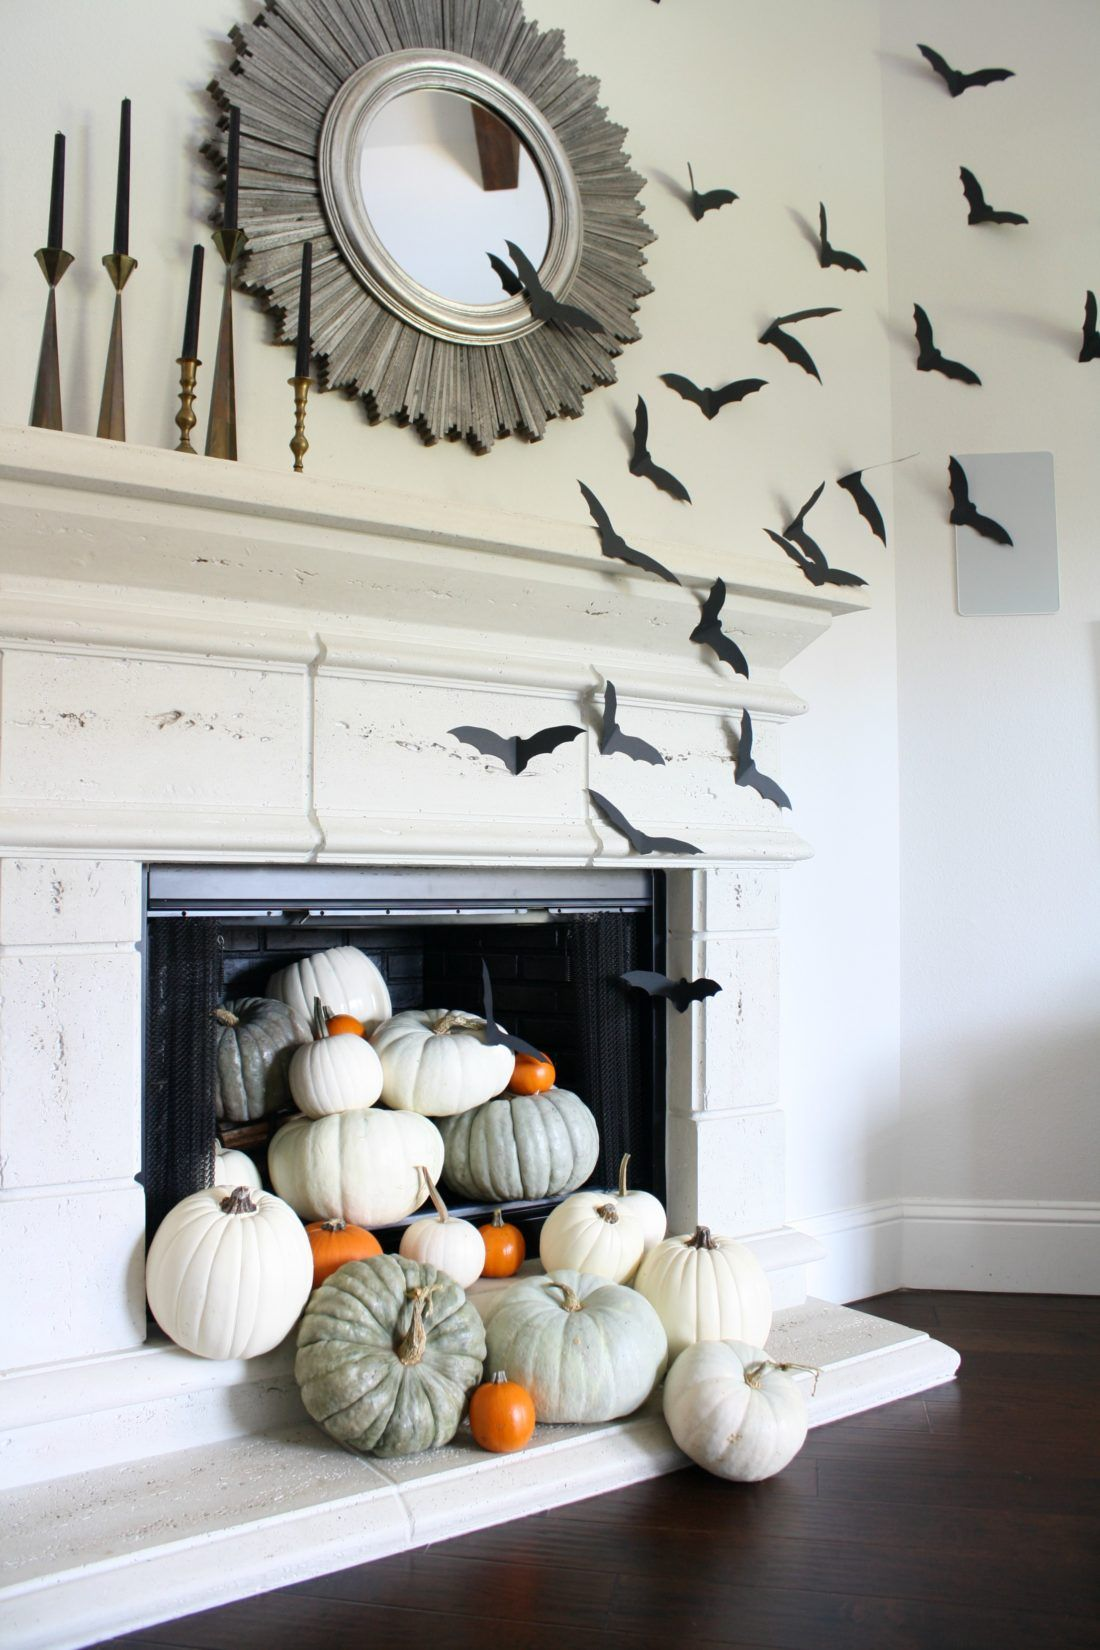 simple halloween decorations, paper bats, bat halloween decor - Spooky Halloween Decorations